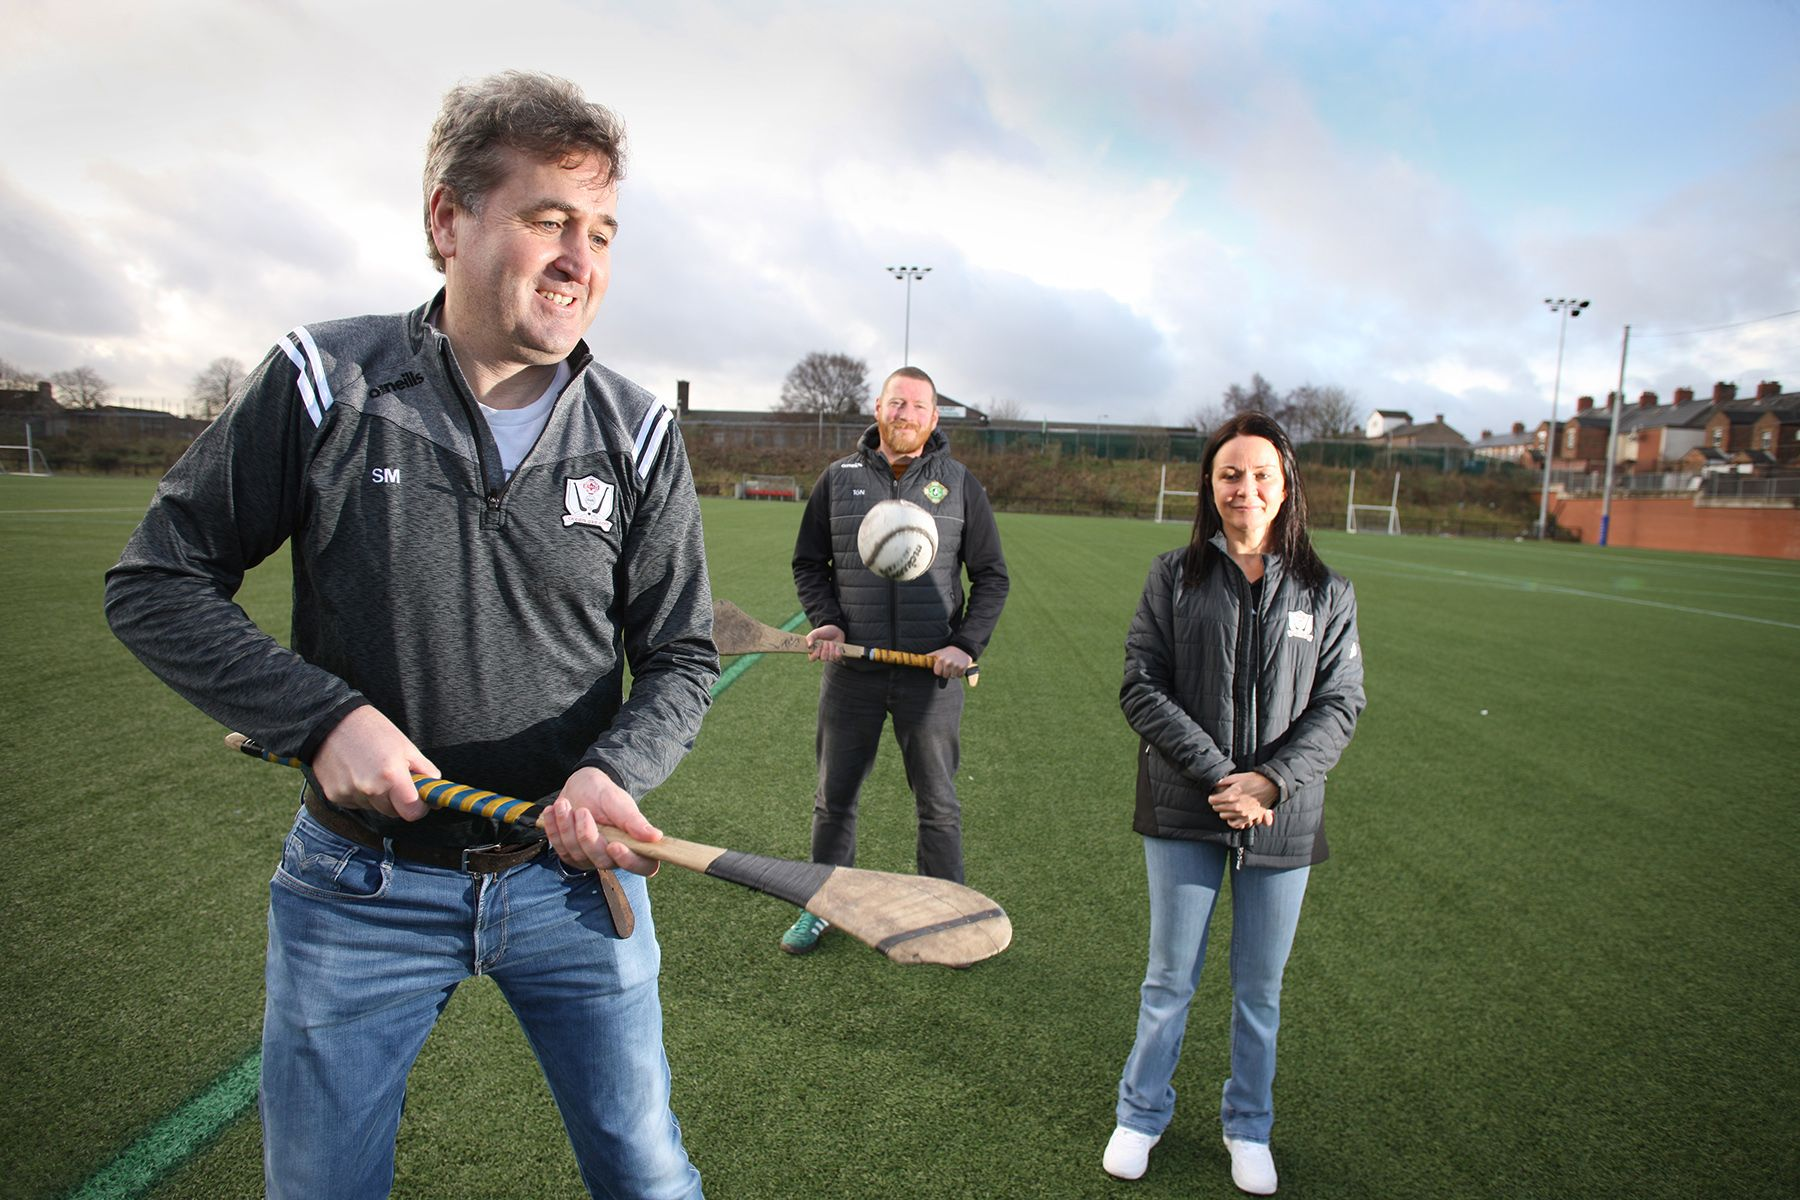 MAITH SIBH: Seán Moyes shows off his hurling skils with Tomás O'Neill and Cllr Nichola Bradley looking on